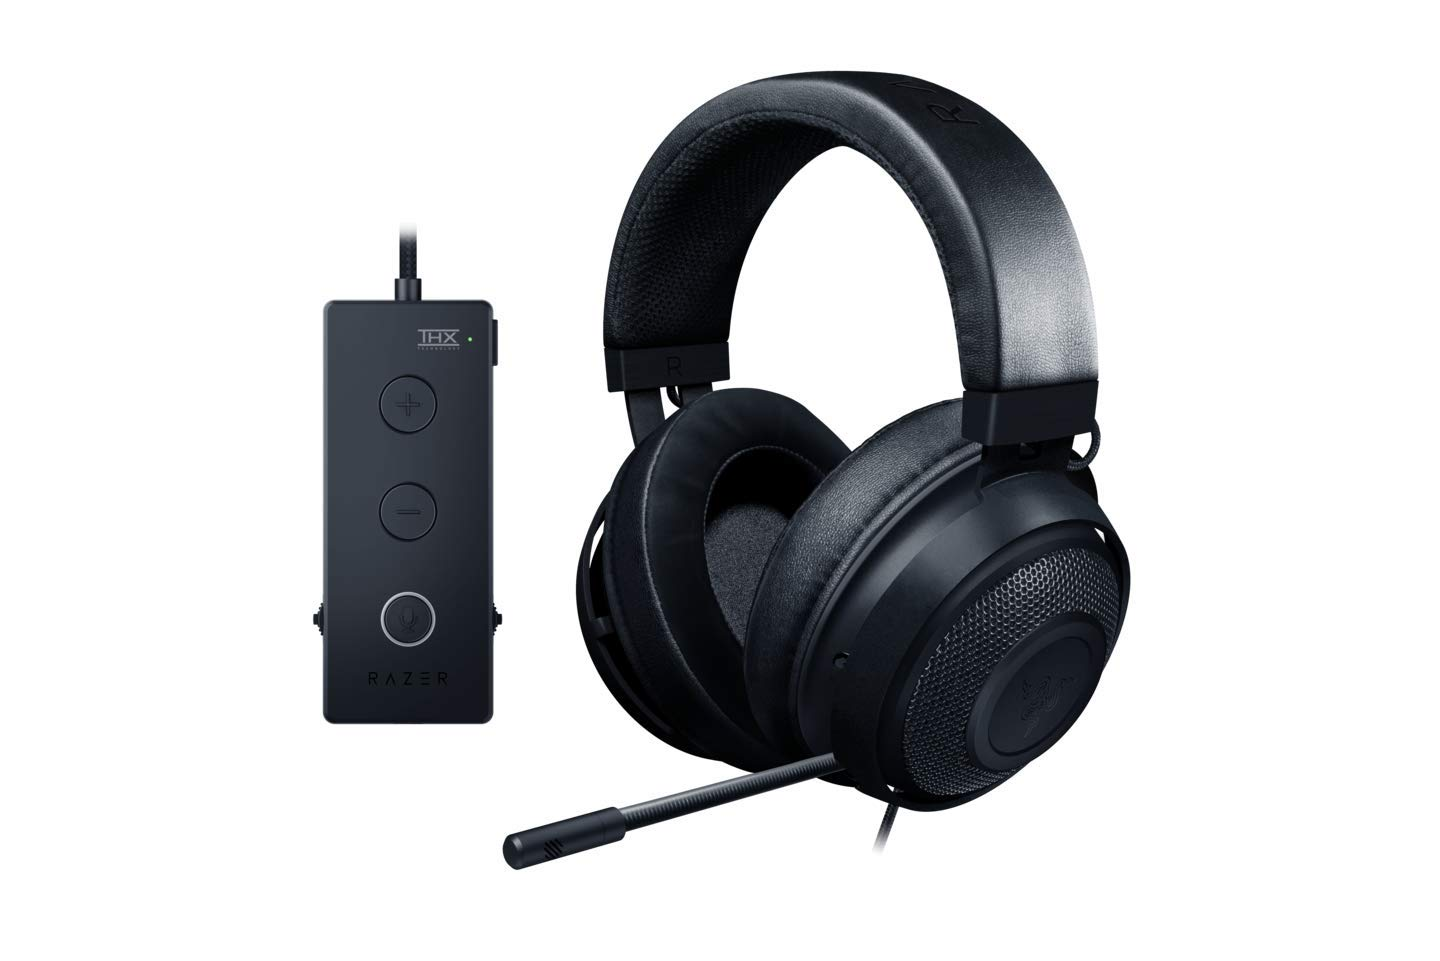 Razer Kraken Tournament Edition THX 7.1 Surround Sound Gaming Headset: Aluminum Frame - Retractable Noise Cancelling Mic - USB DAC Included - For PC, Xbox, PS4, Nintendo Switch - Matte Black by Razer